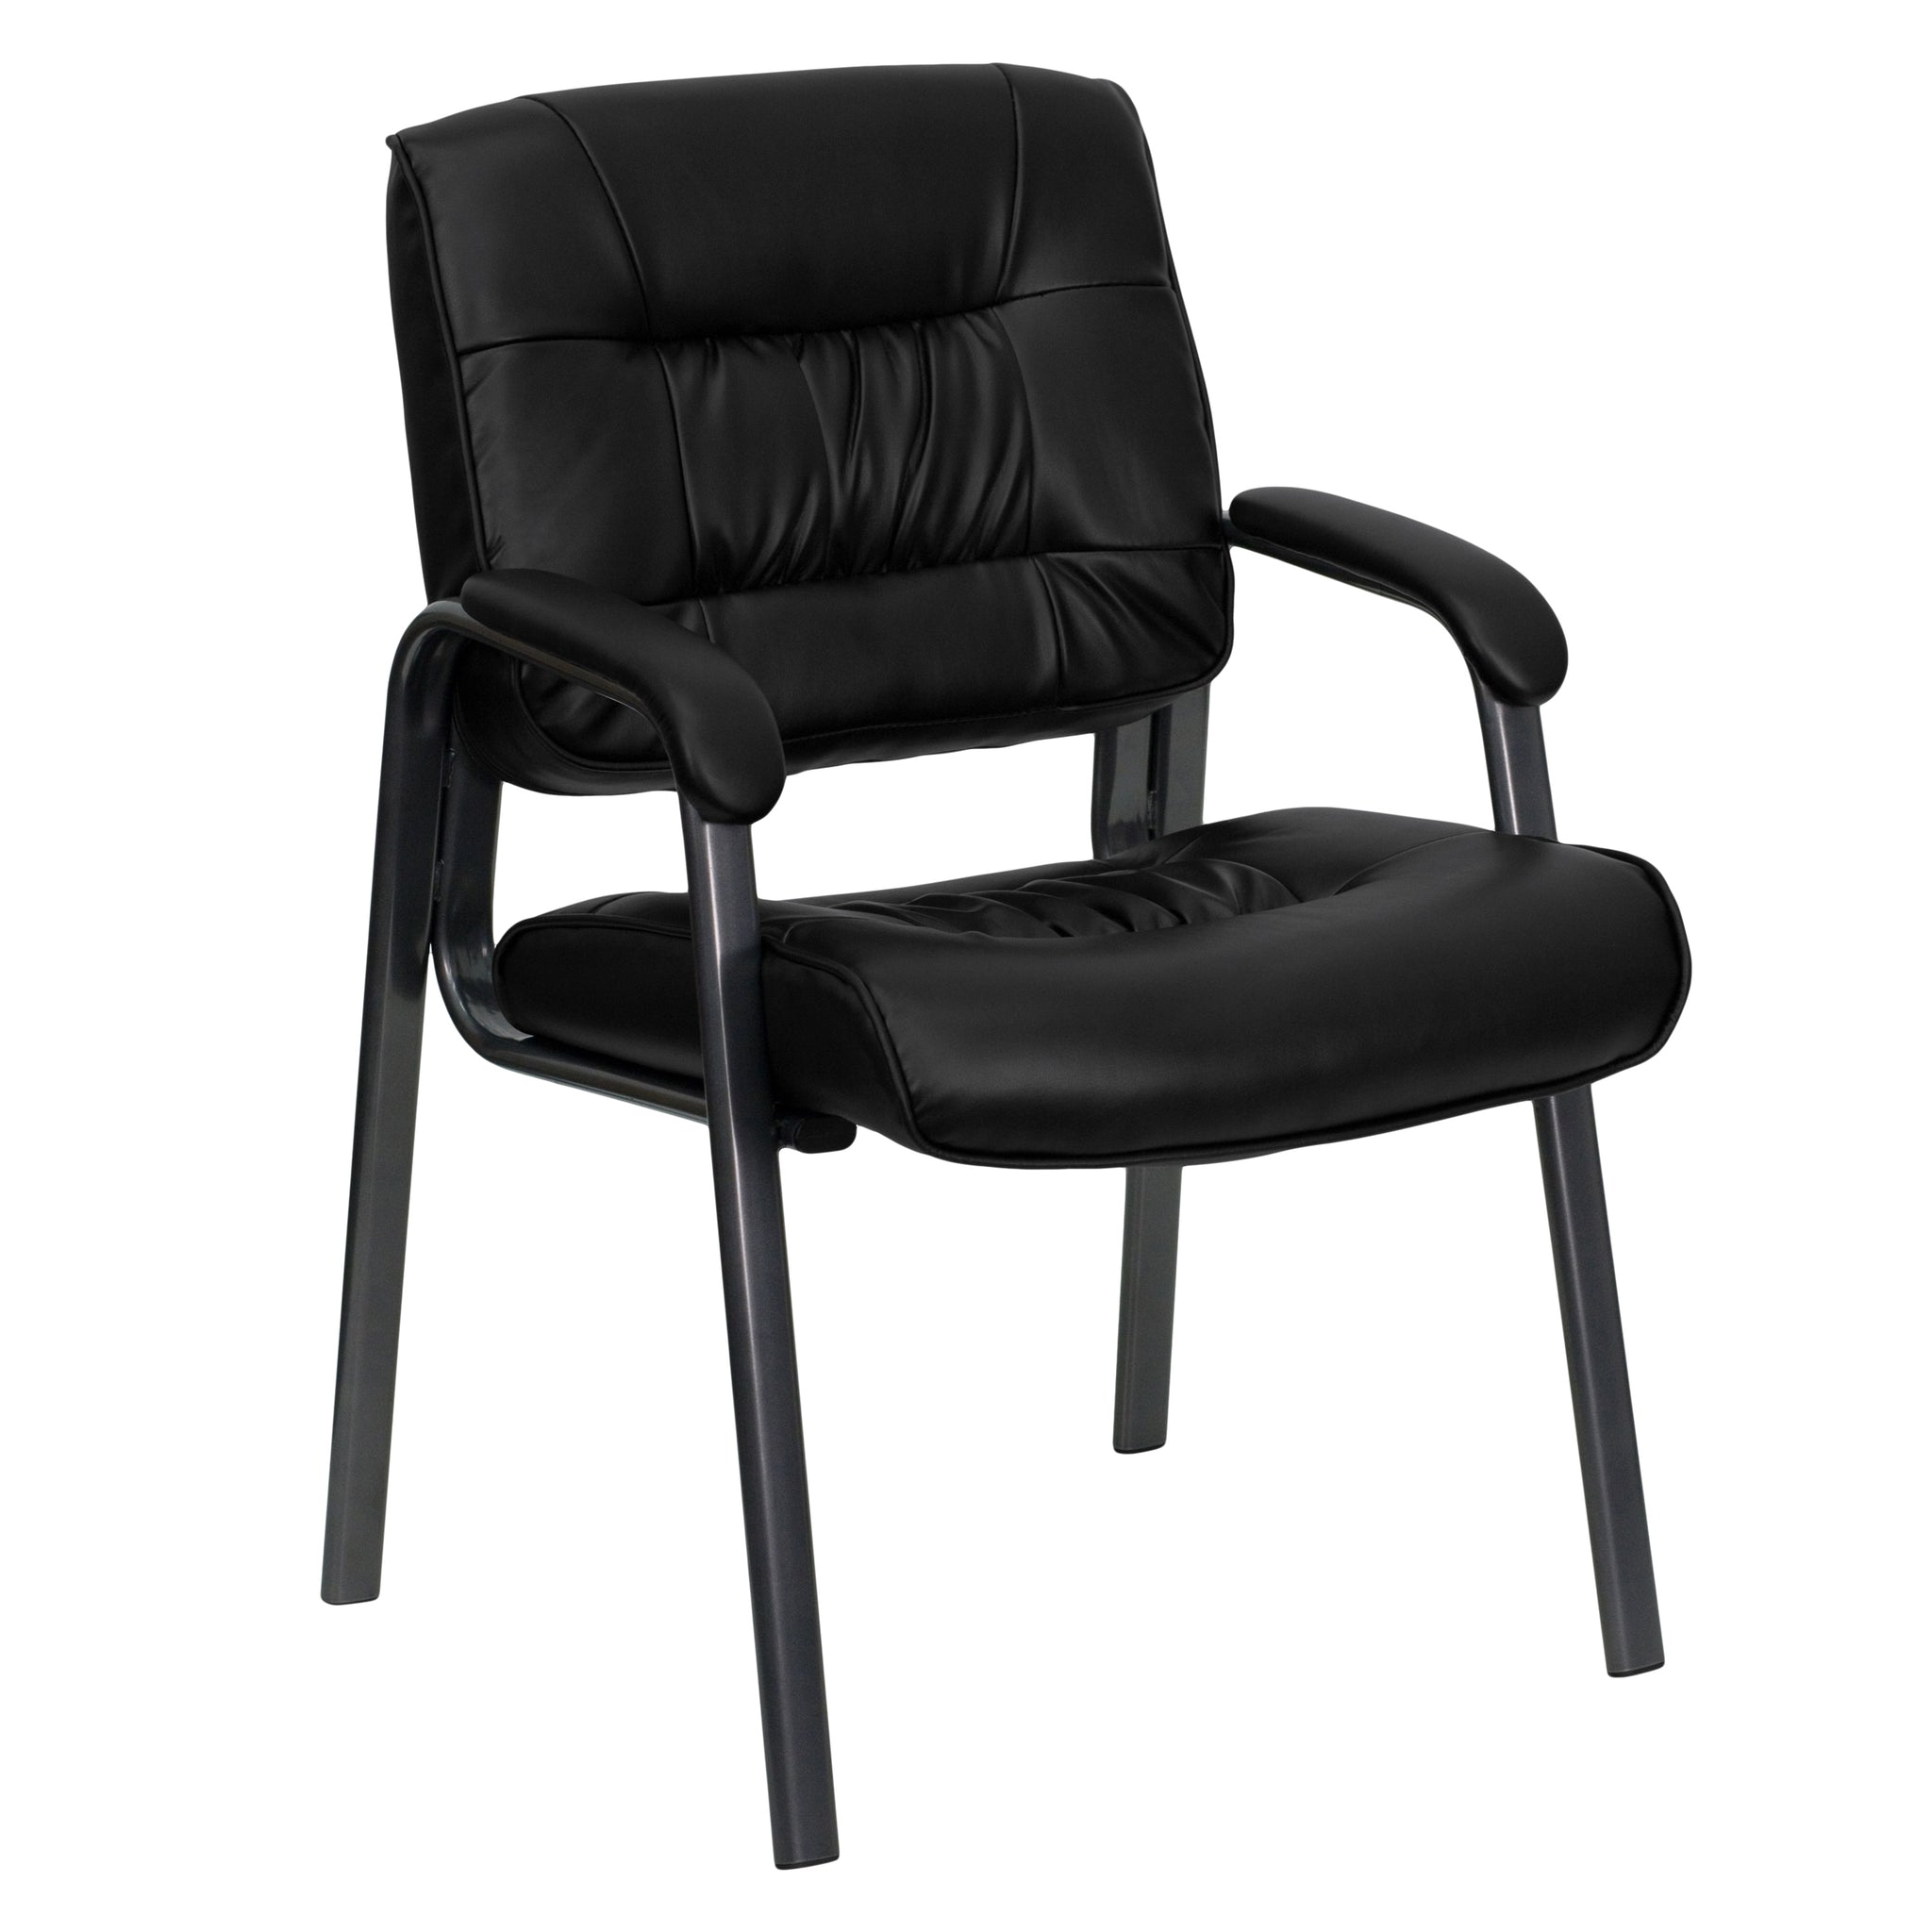 Leather Executive Side Chair with Frame Finish: Black Leather/Titanium Frame